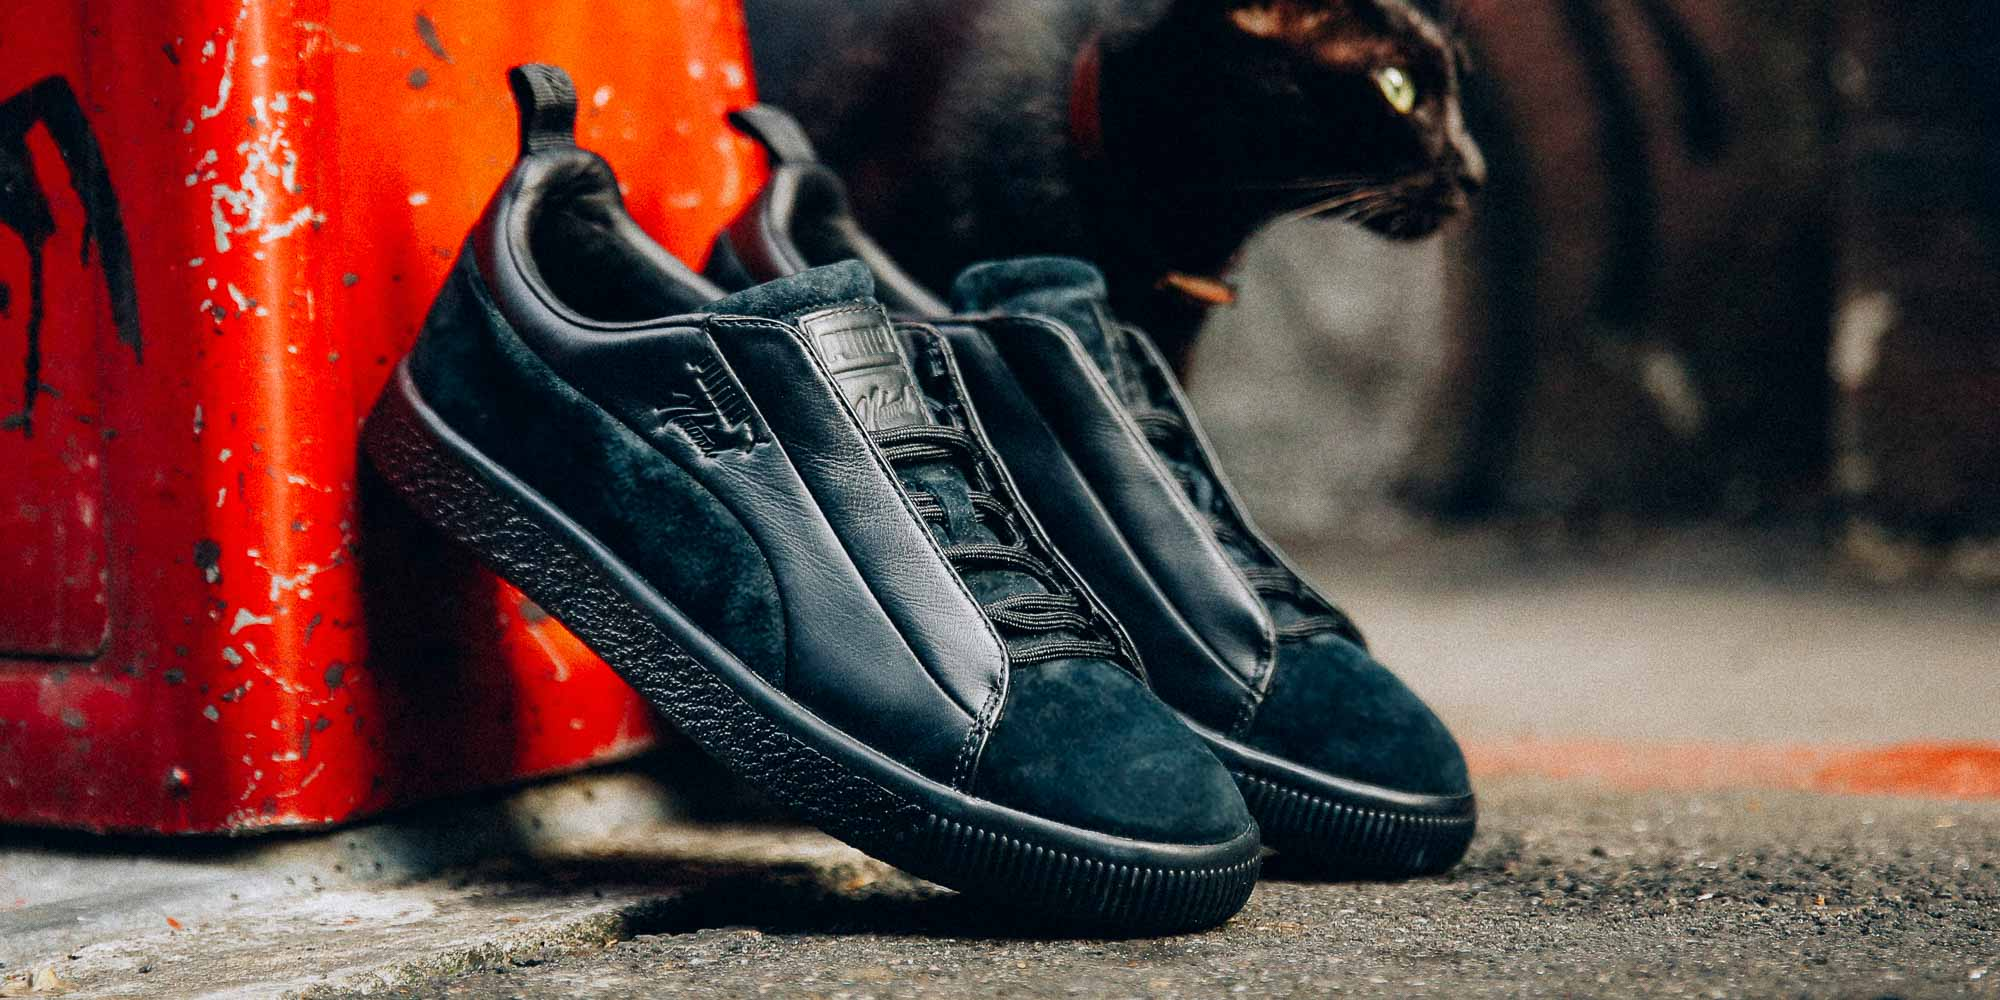 lowest price 4aa4d 53657 Clyde FSHN 顛覆認知/ PUMA x NATUREL 讓經典魅力重組– KENLU.net